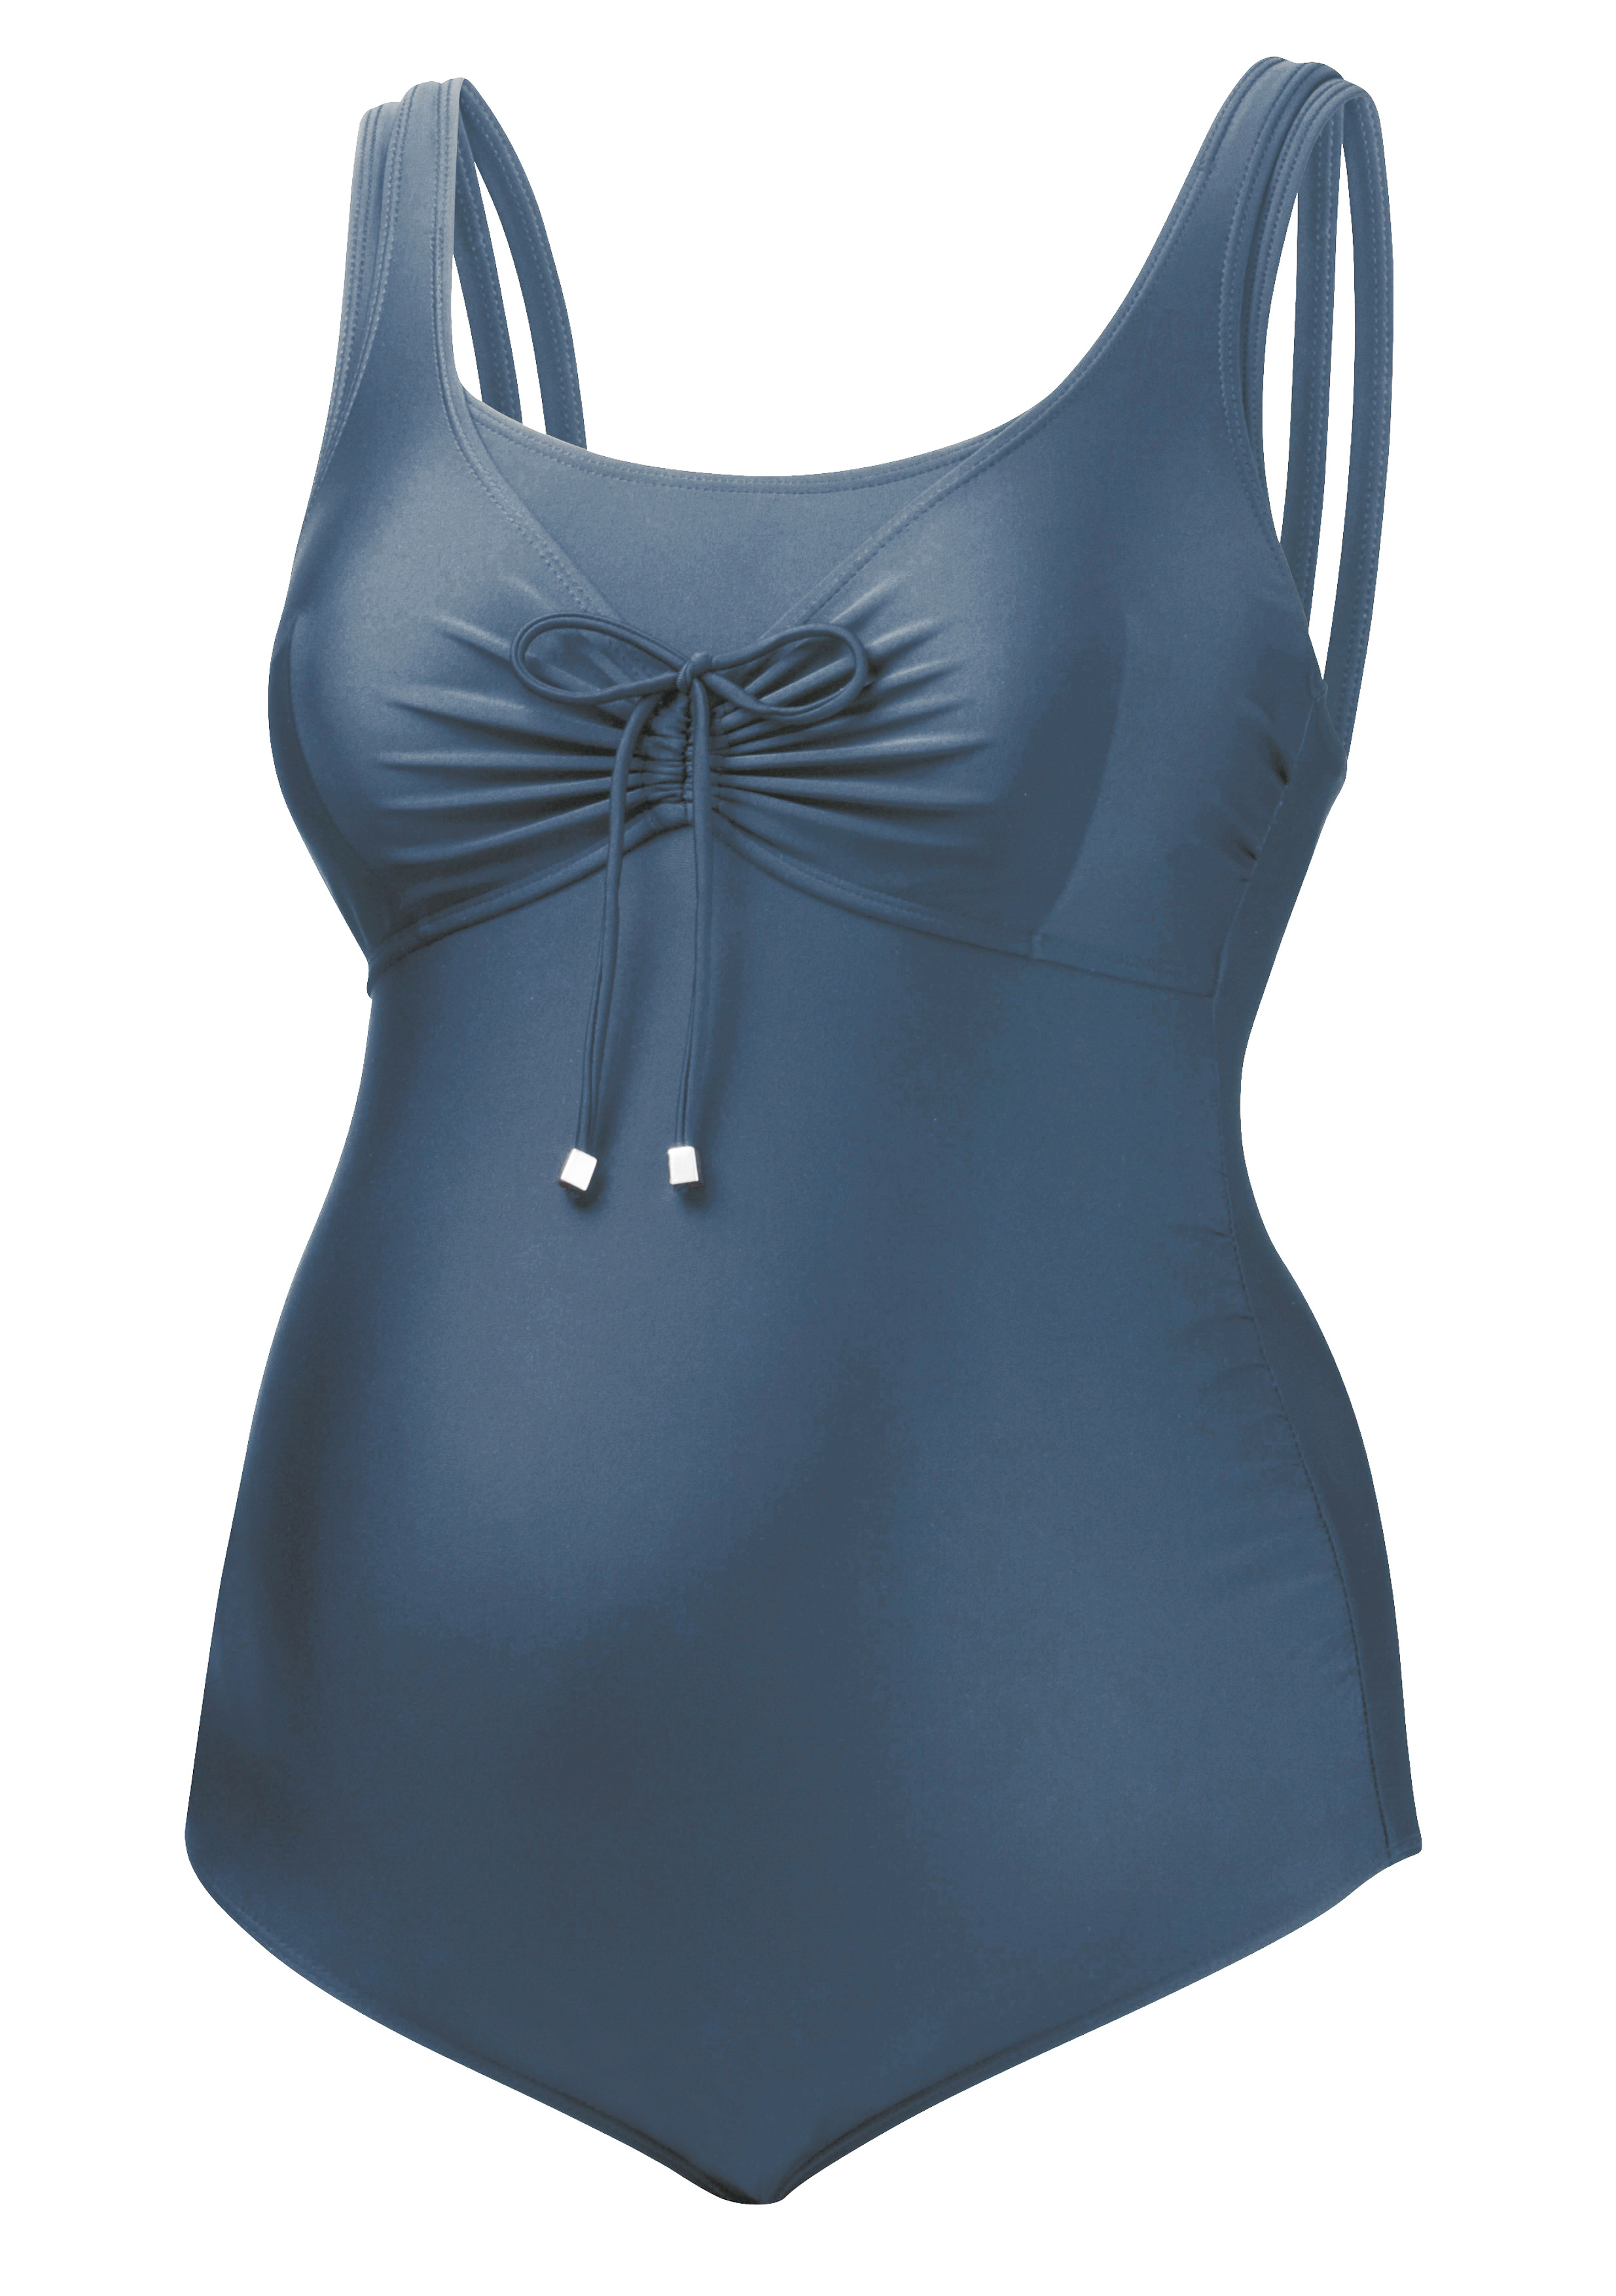 013-SW18-09 | juniper swimsuit  | steel blue